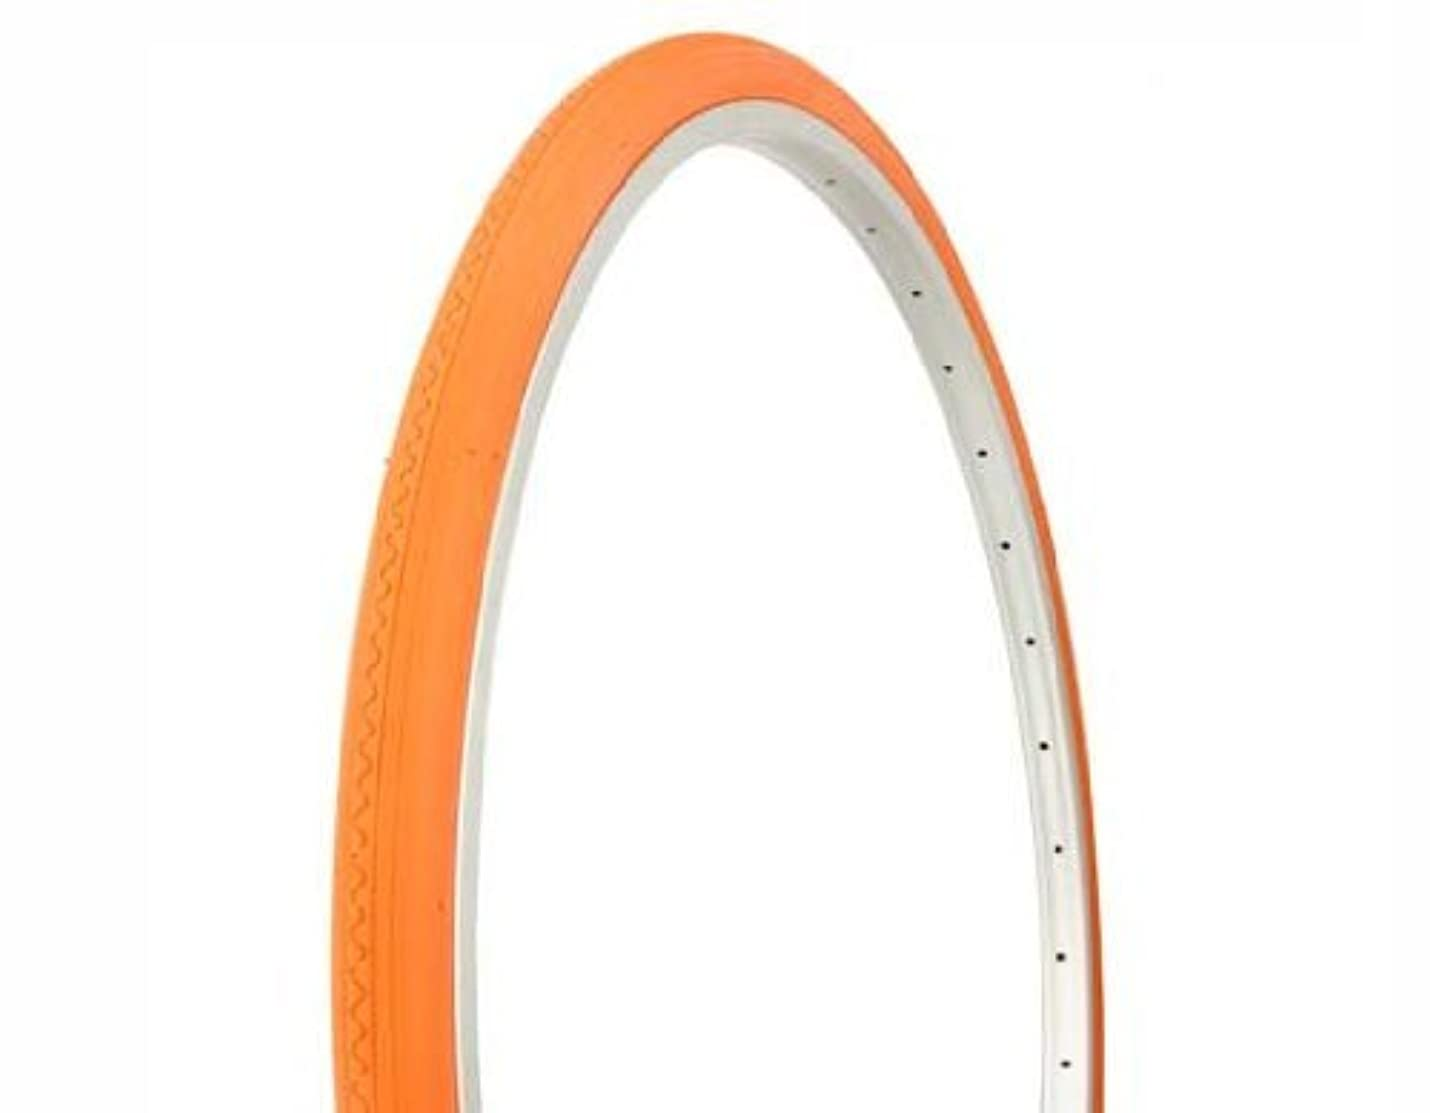 埋め込む驚くばかりカウントDuro Road Tire 27in x 1-1/4in, Solid Orange by Duro